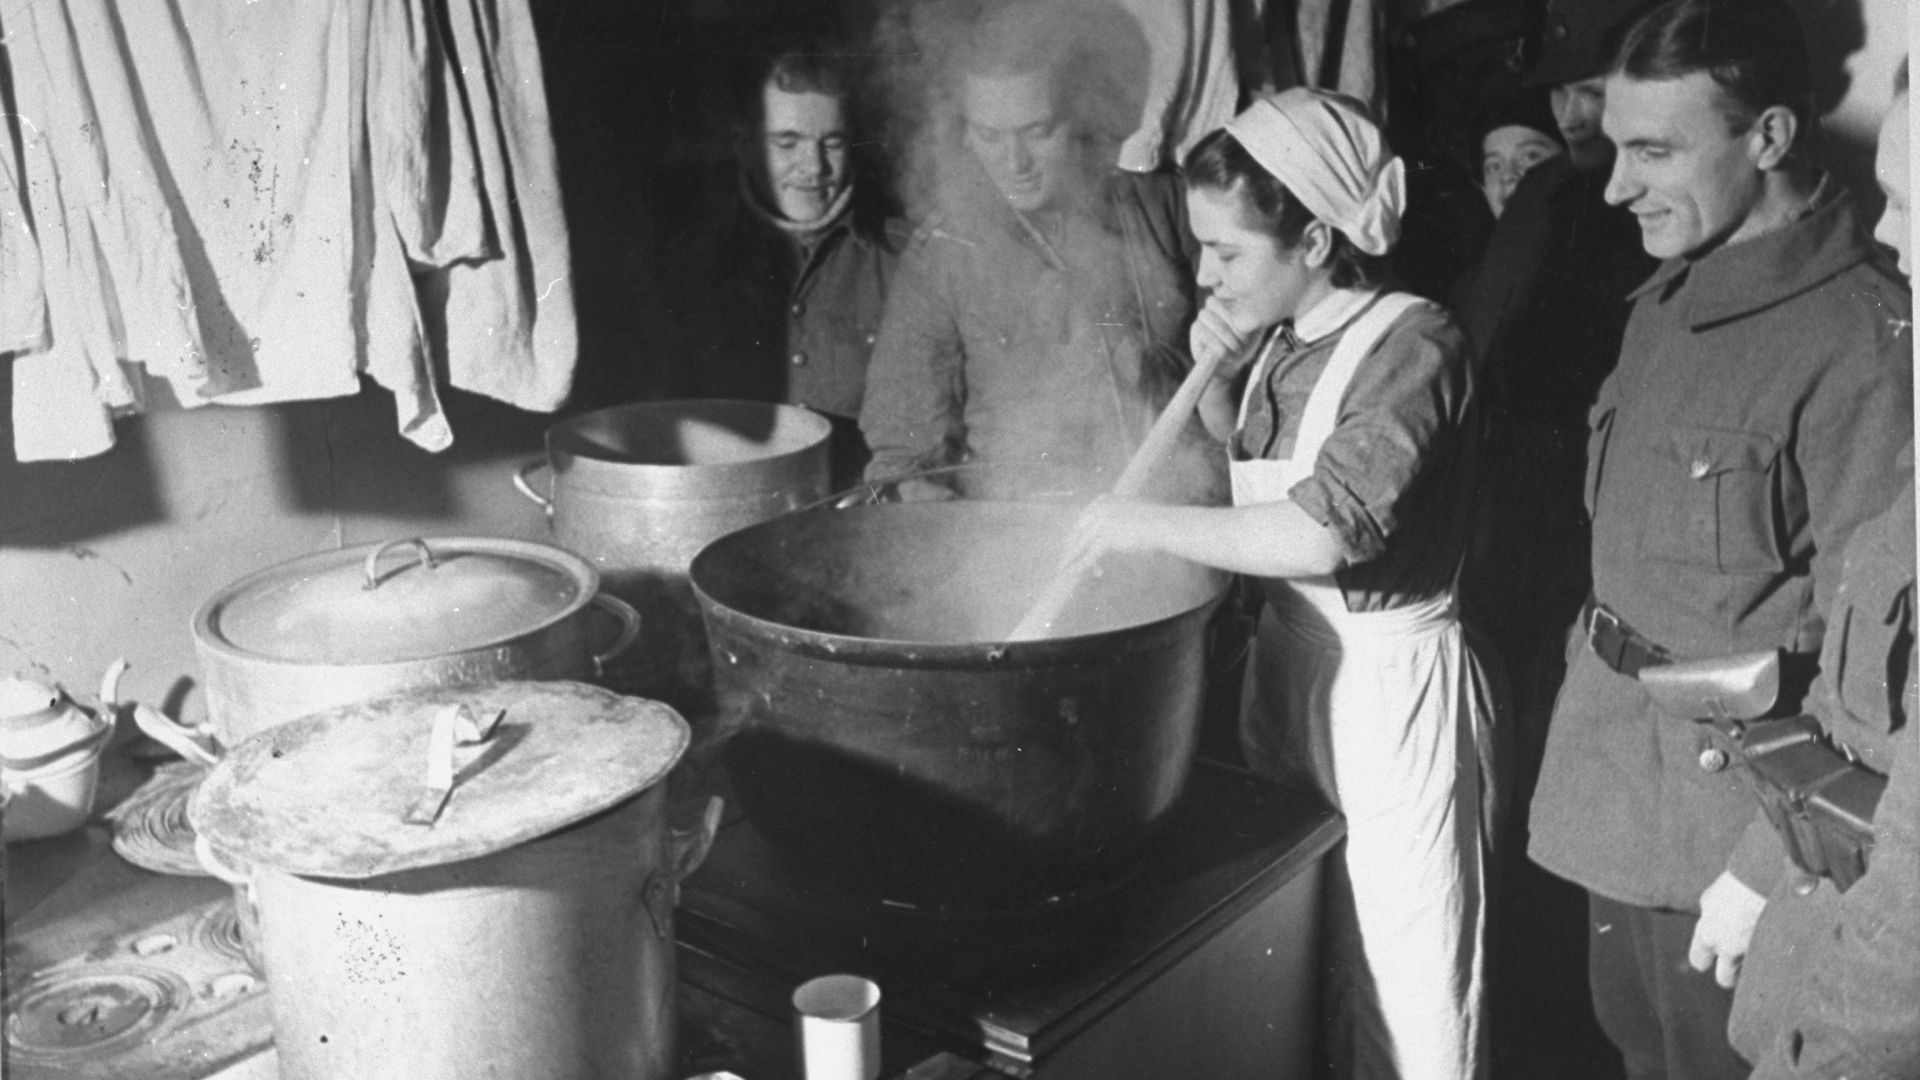 Finnish soldiers watching the preparation of their meal during their war with Russia. (Credit: Carl Mydans/The LIFE Picture Collection/Getty Images)